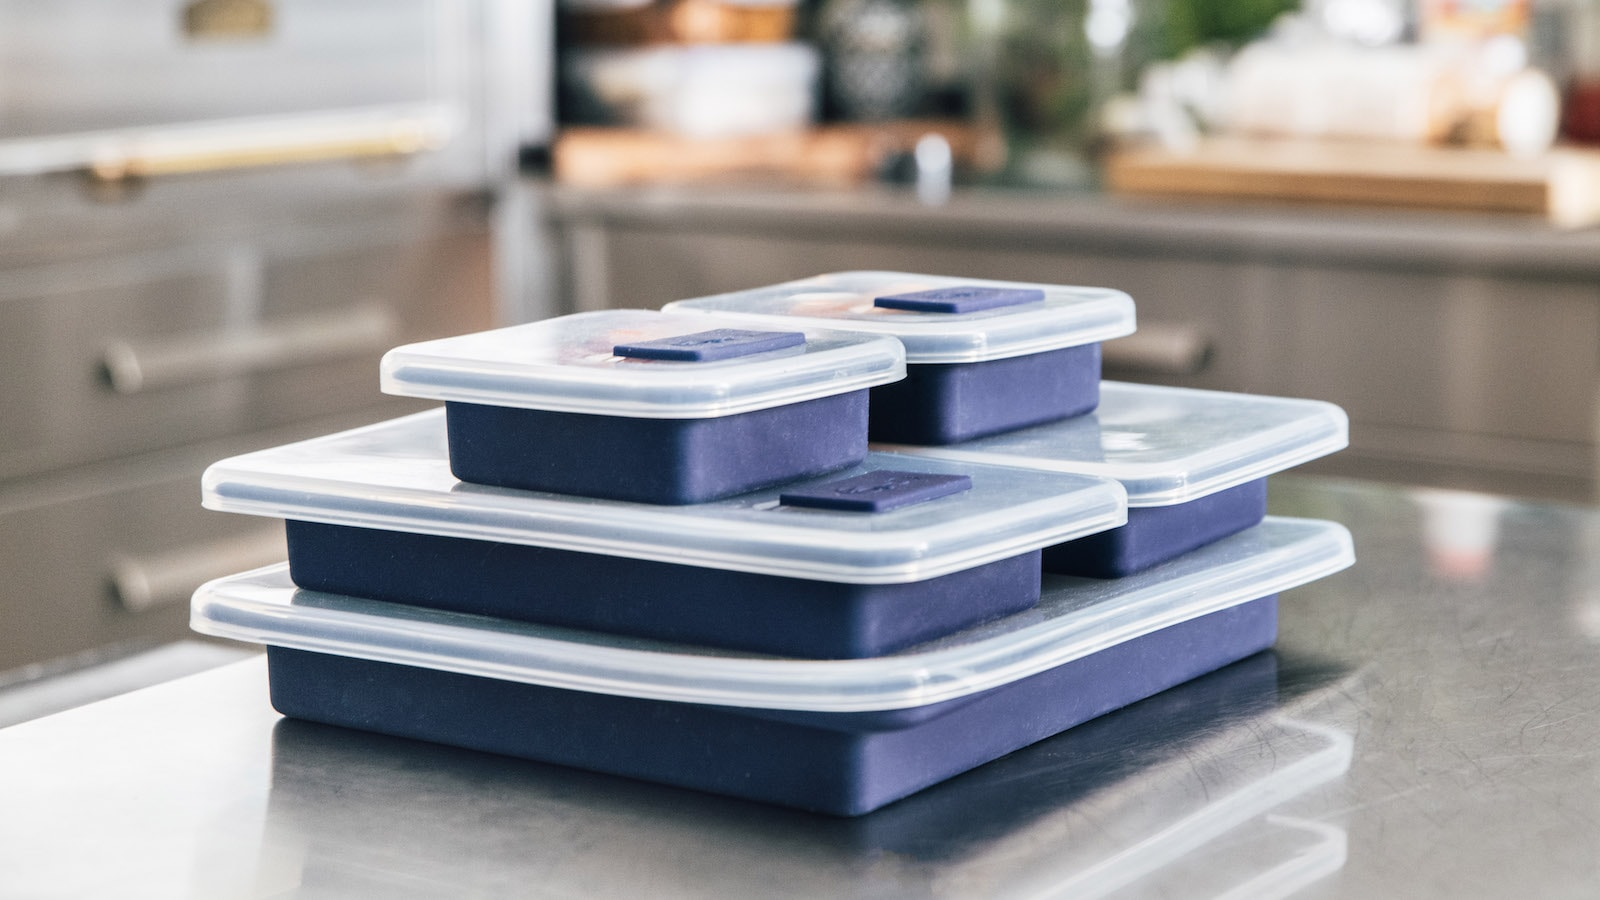 Omnipan by Chef Avenue high-performance cookware lets you prep, cook, bake, steam, & serve